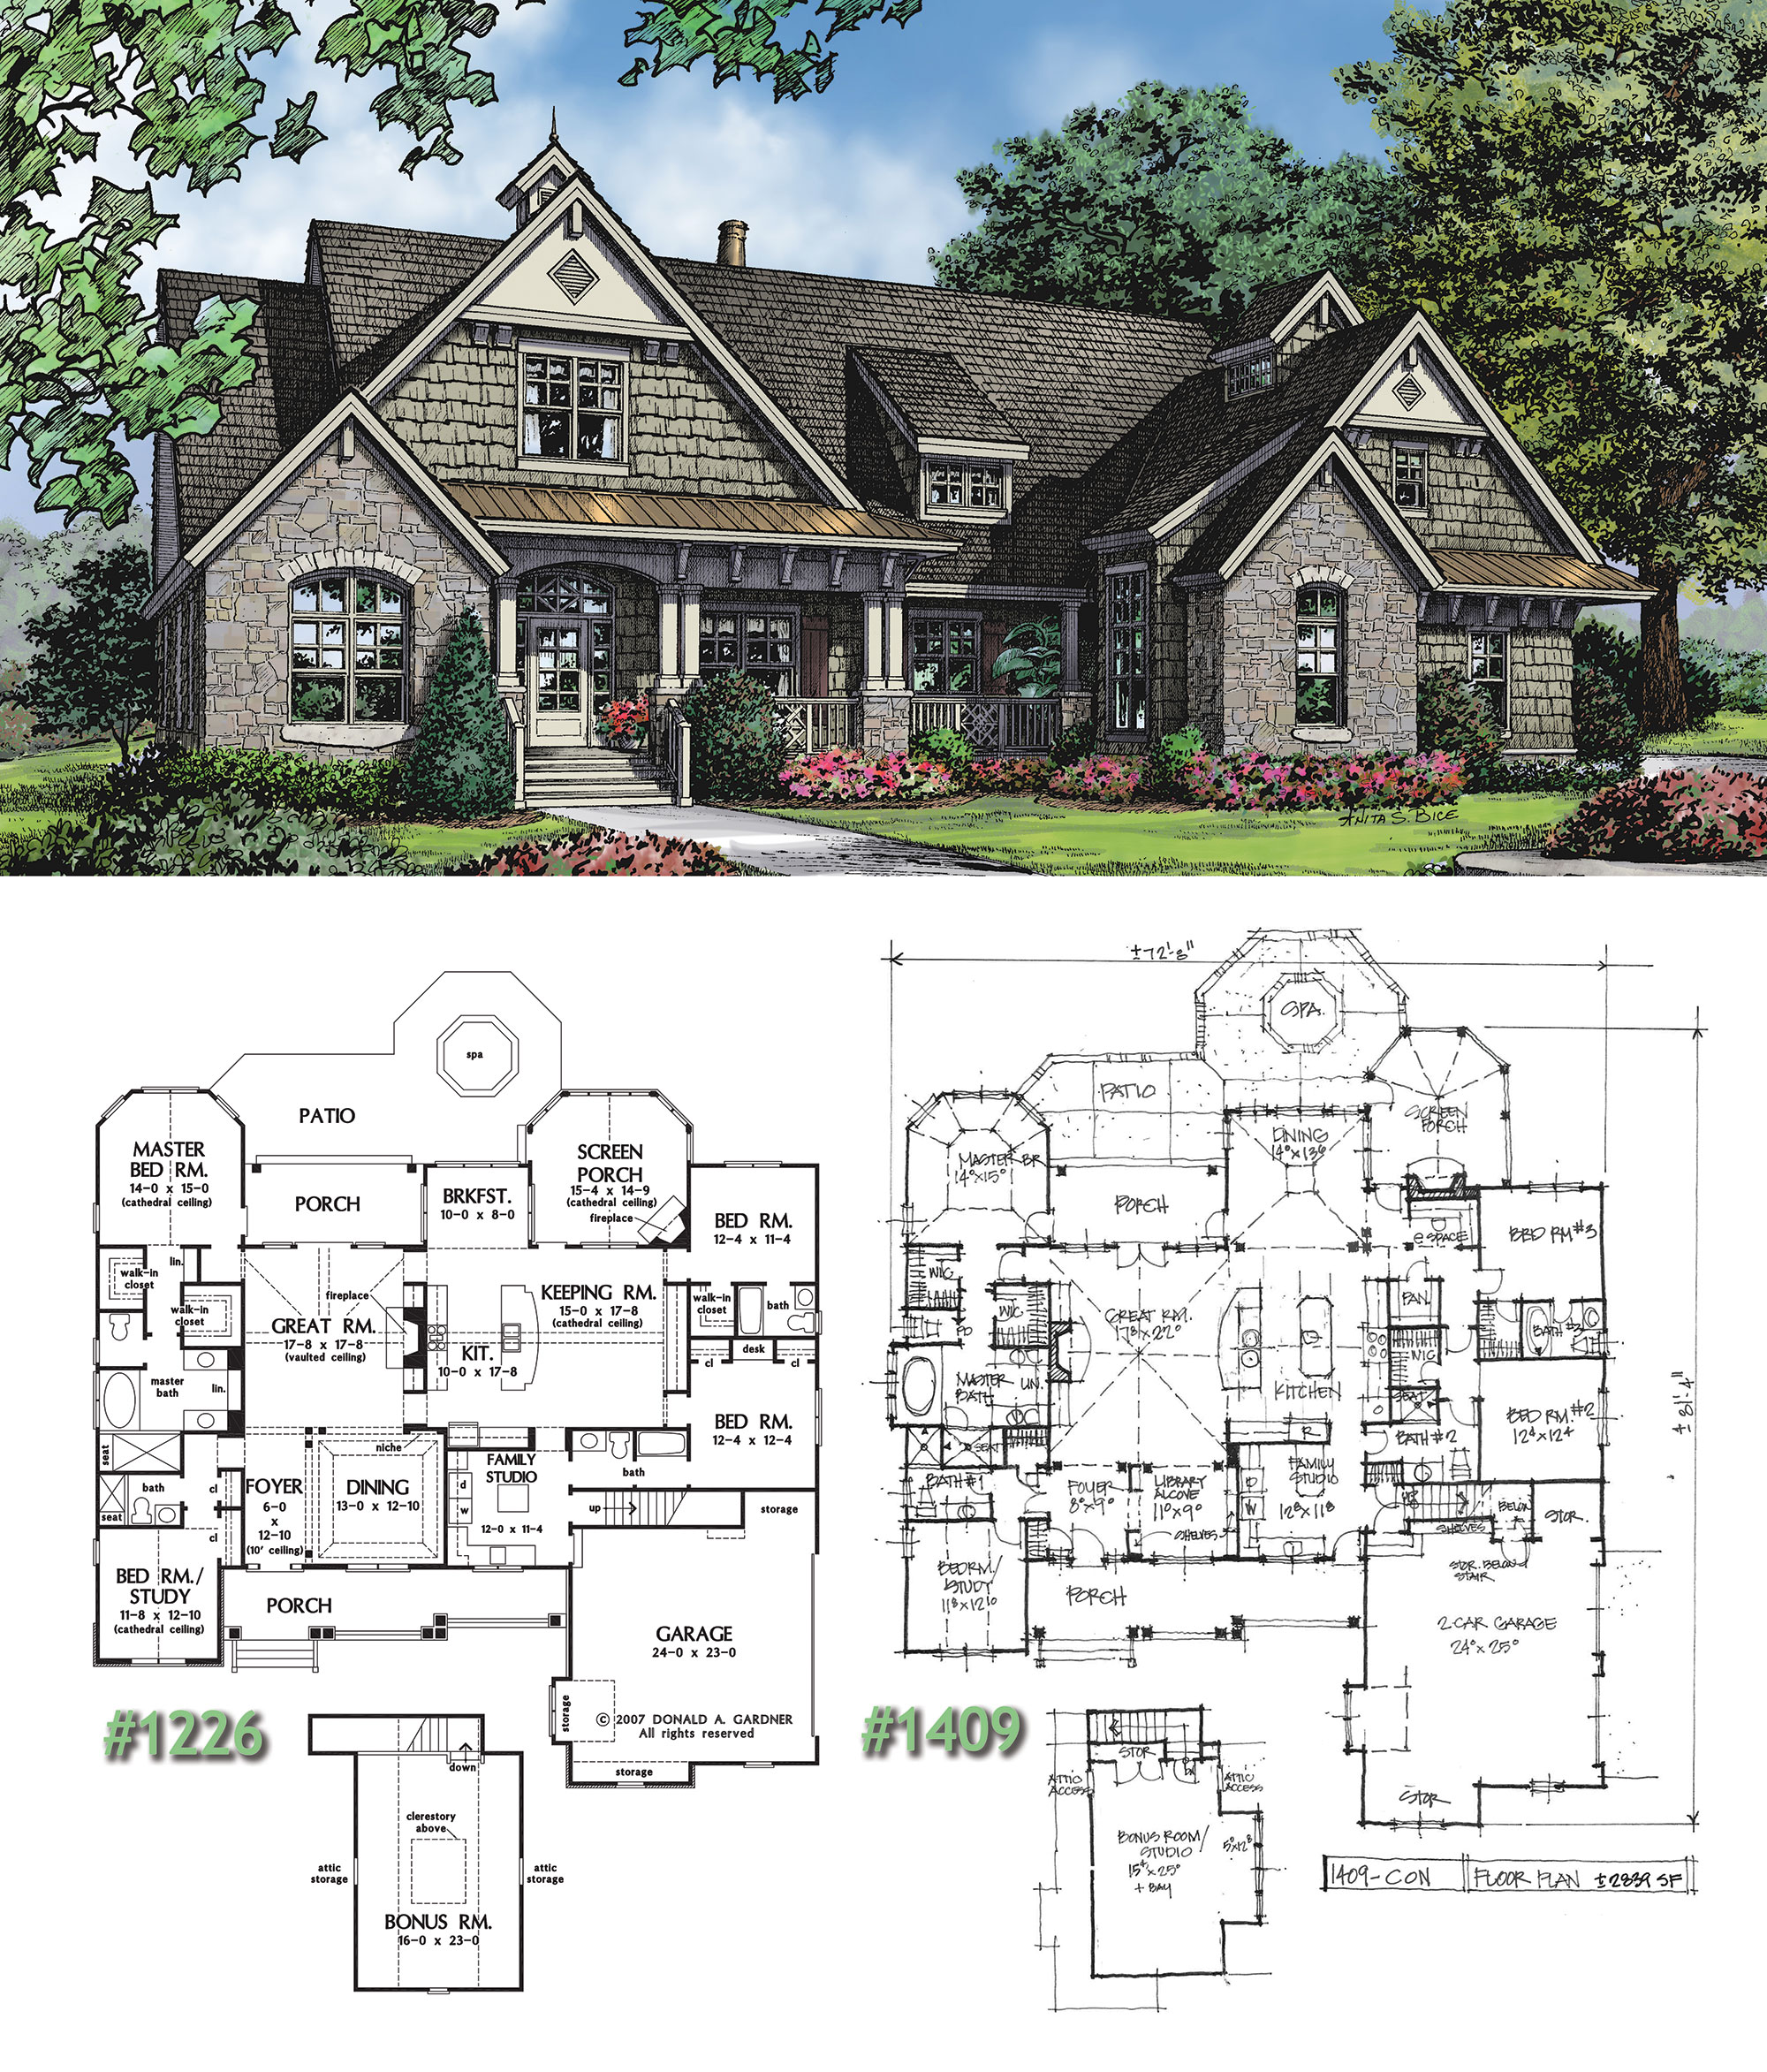 Craftsman house plan on the drawing board 1409 Craftsman homes plans